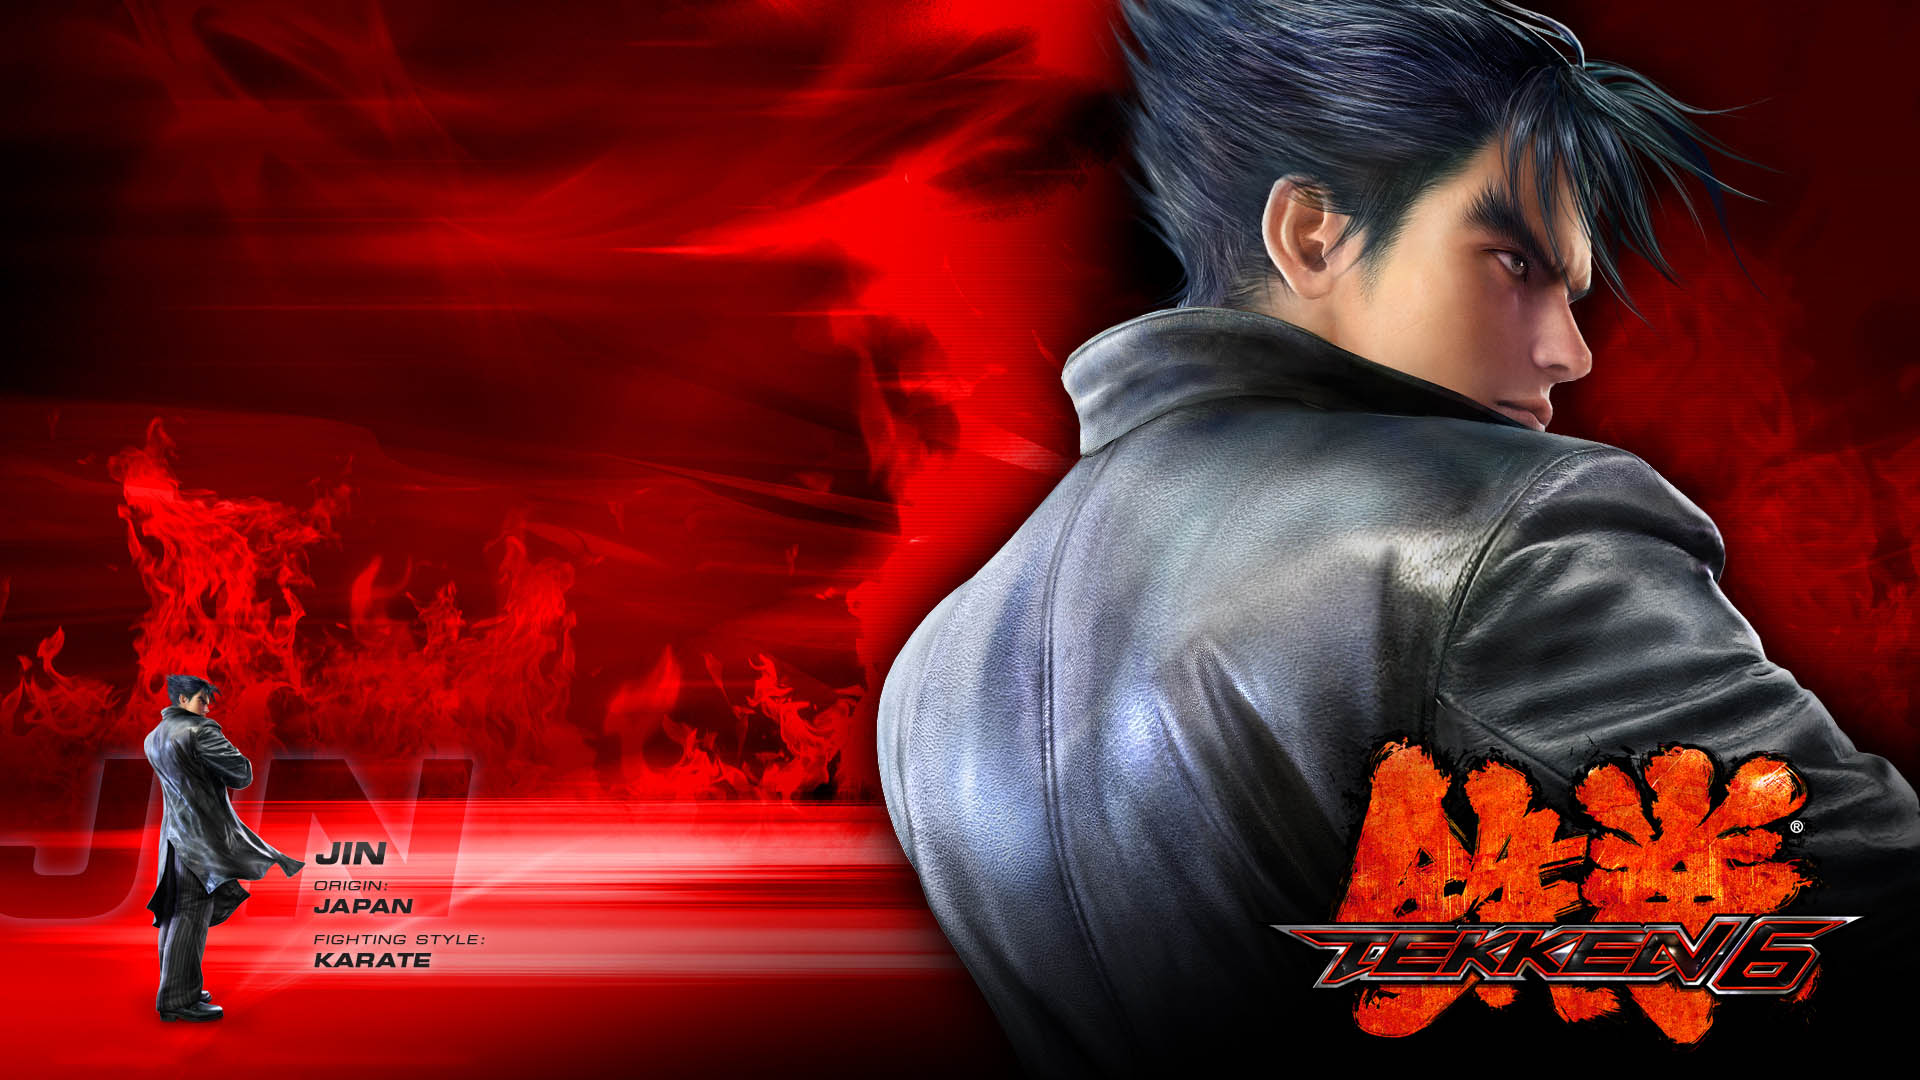 Jin de Tekken wallpaper hd